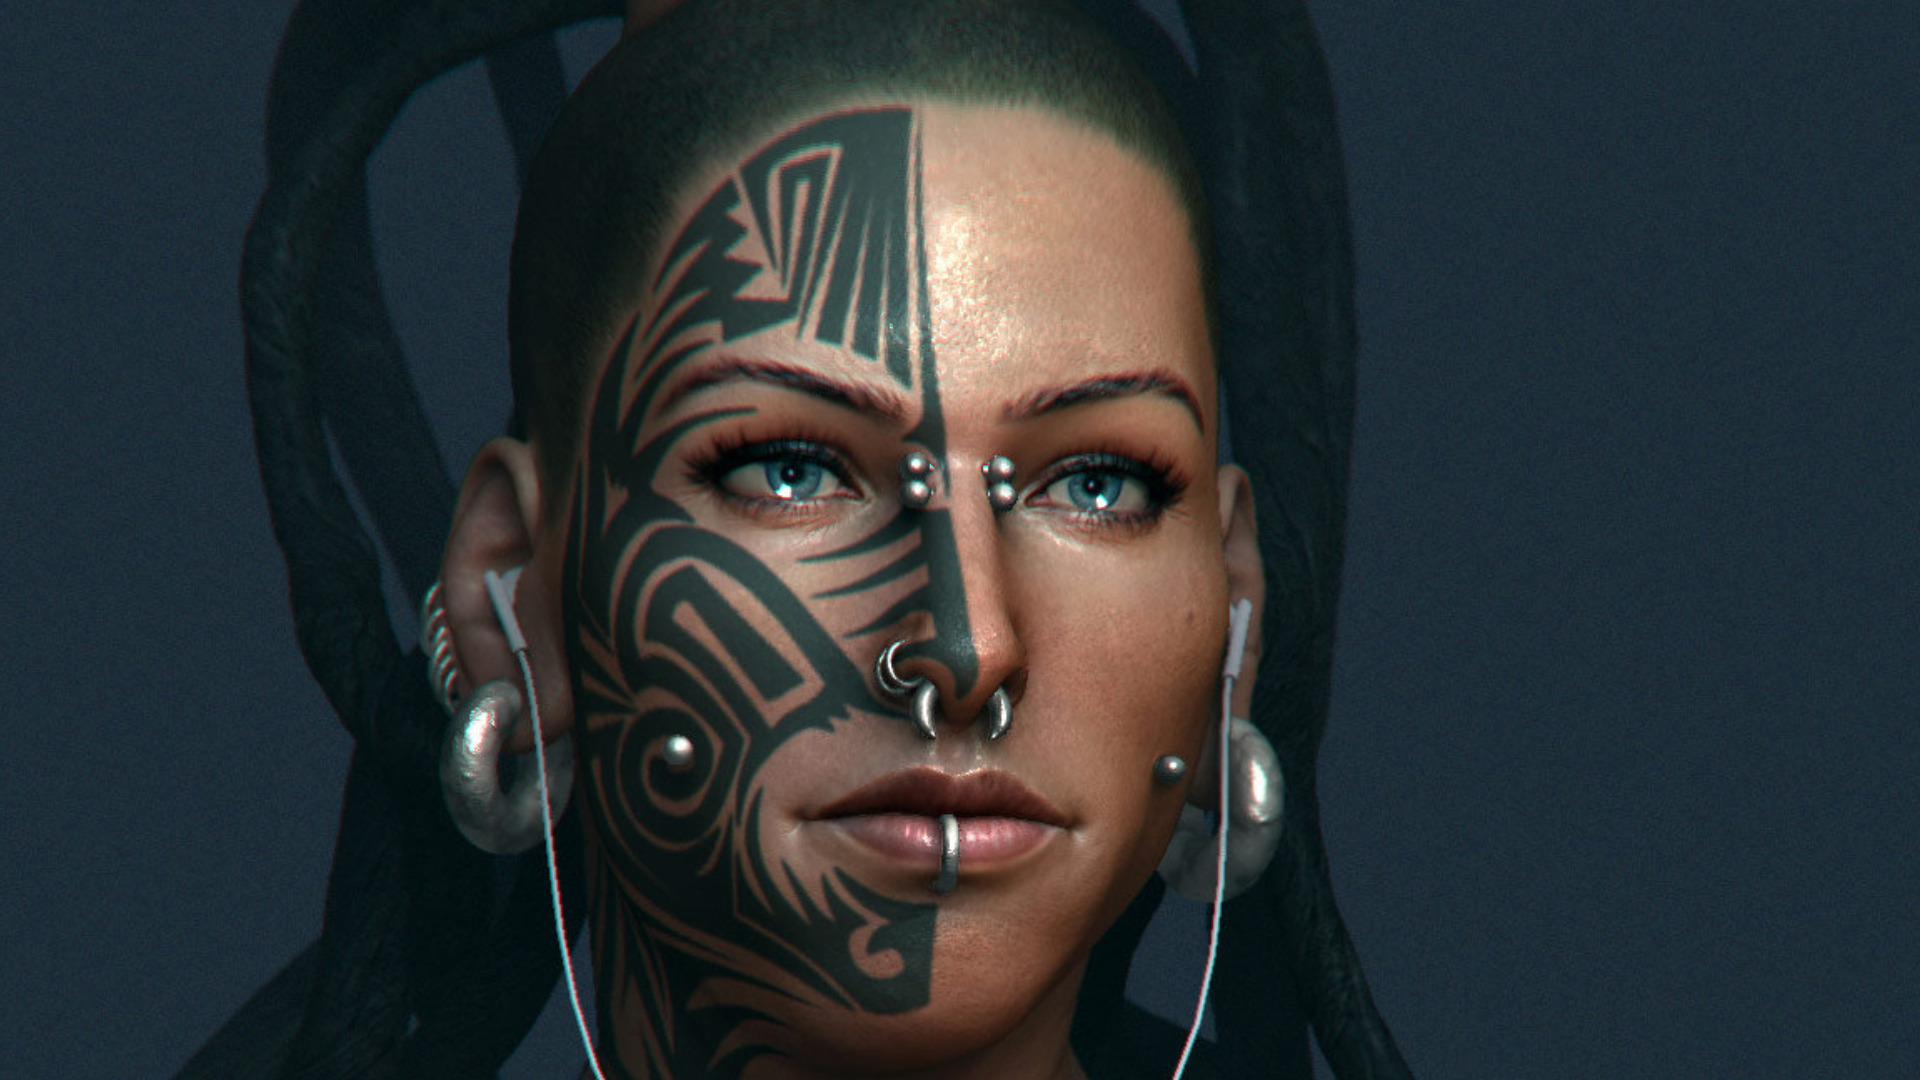 Tattoo Full HD Wallpaper And Background